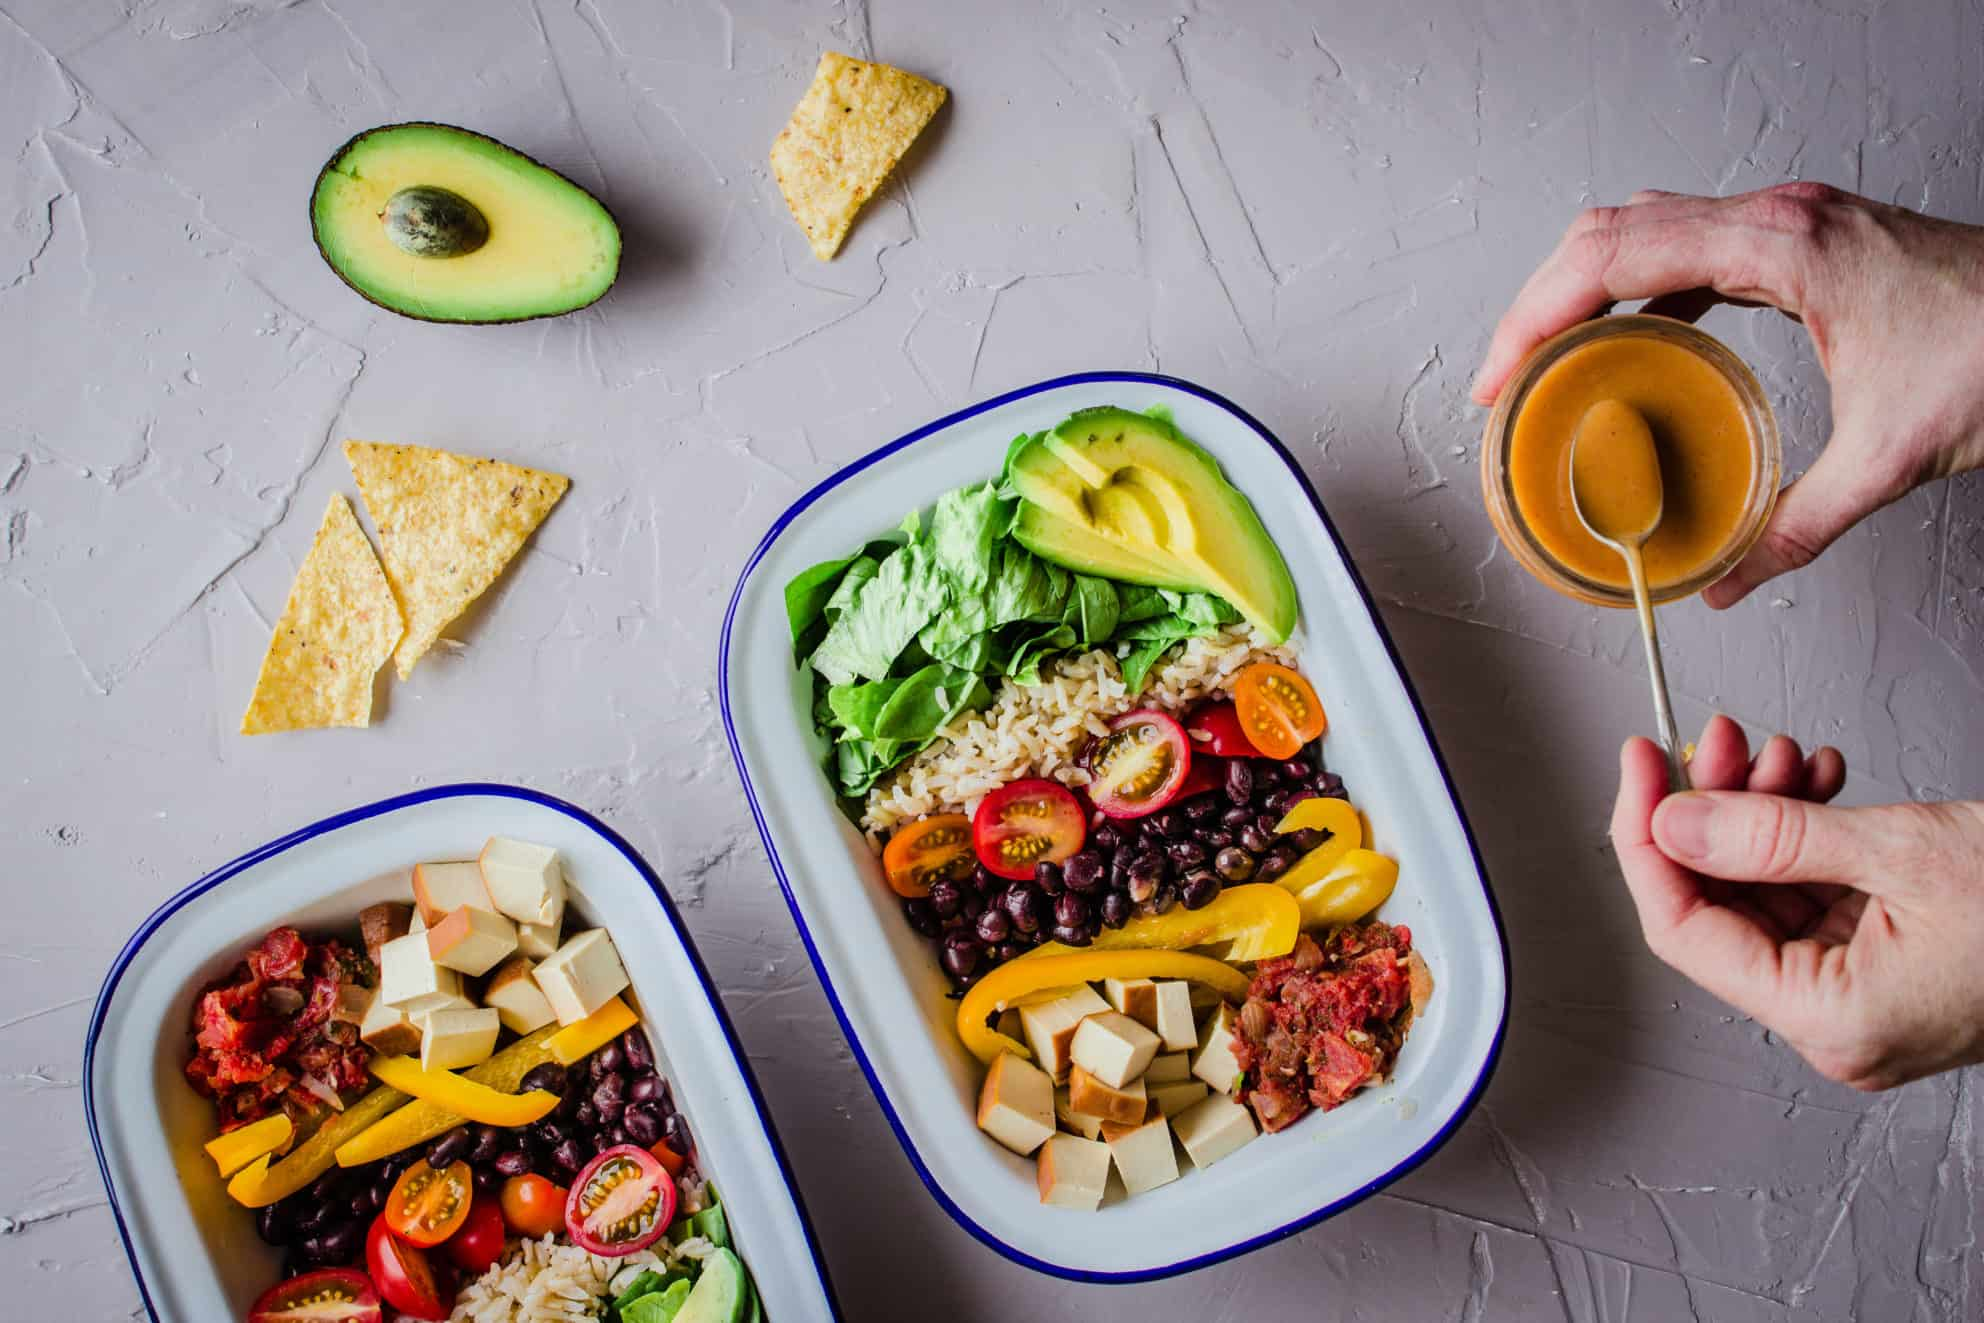 Overhead shot of Healthy Mexican Bowls with Salsa, surrounded by avocado, tortilla chips and woman's hands holding pot of dressing.